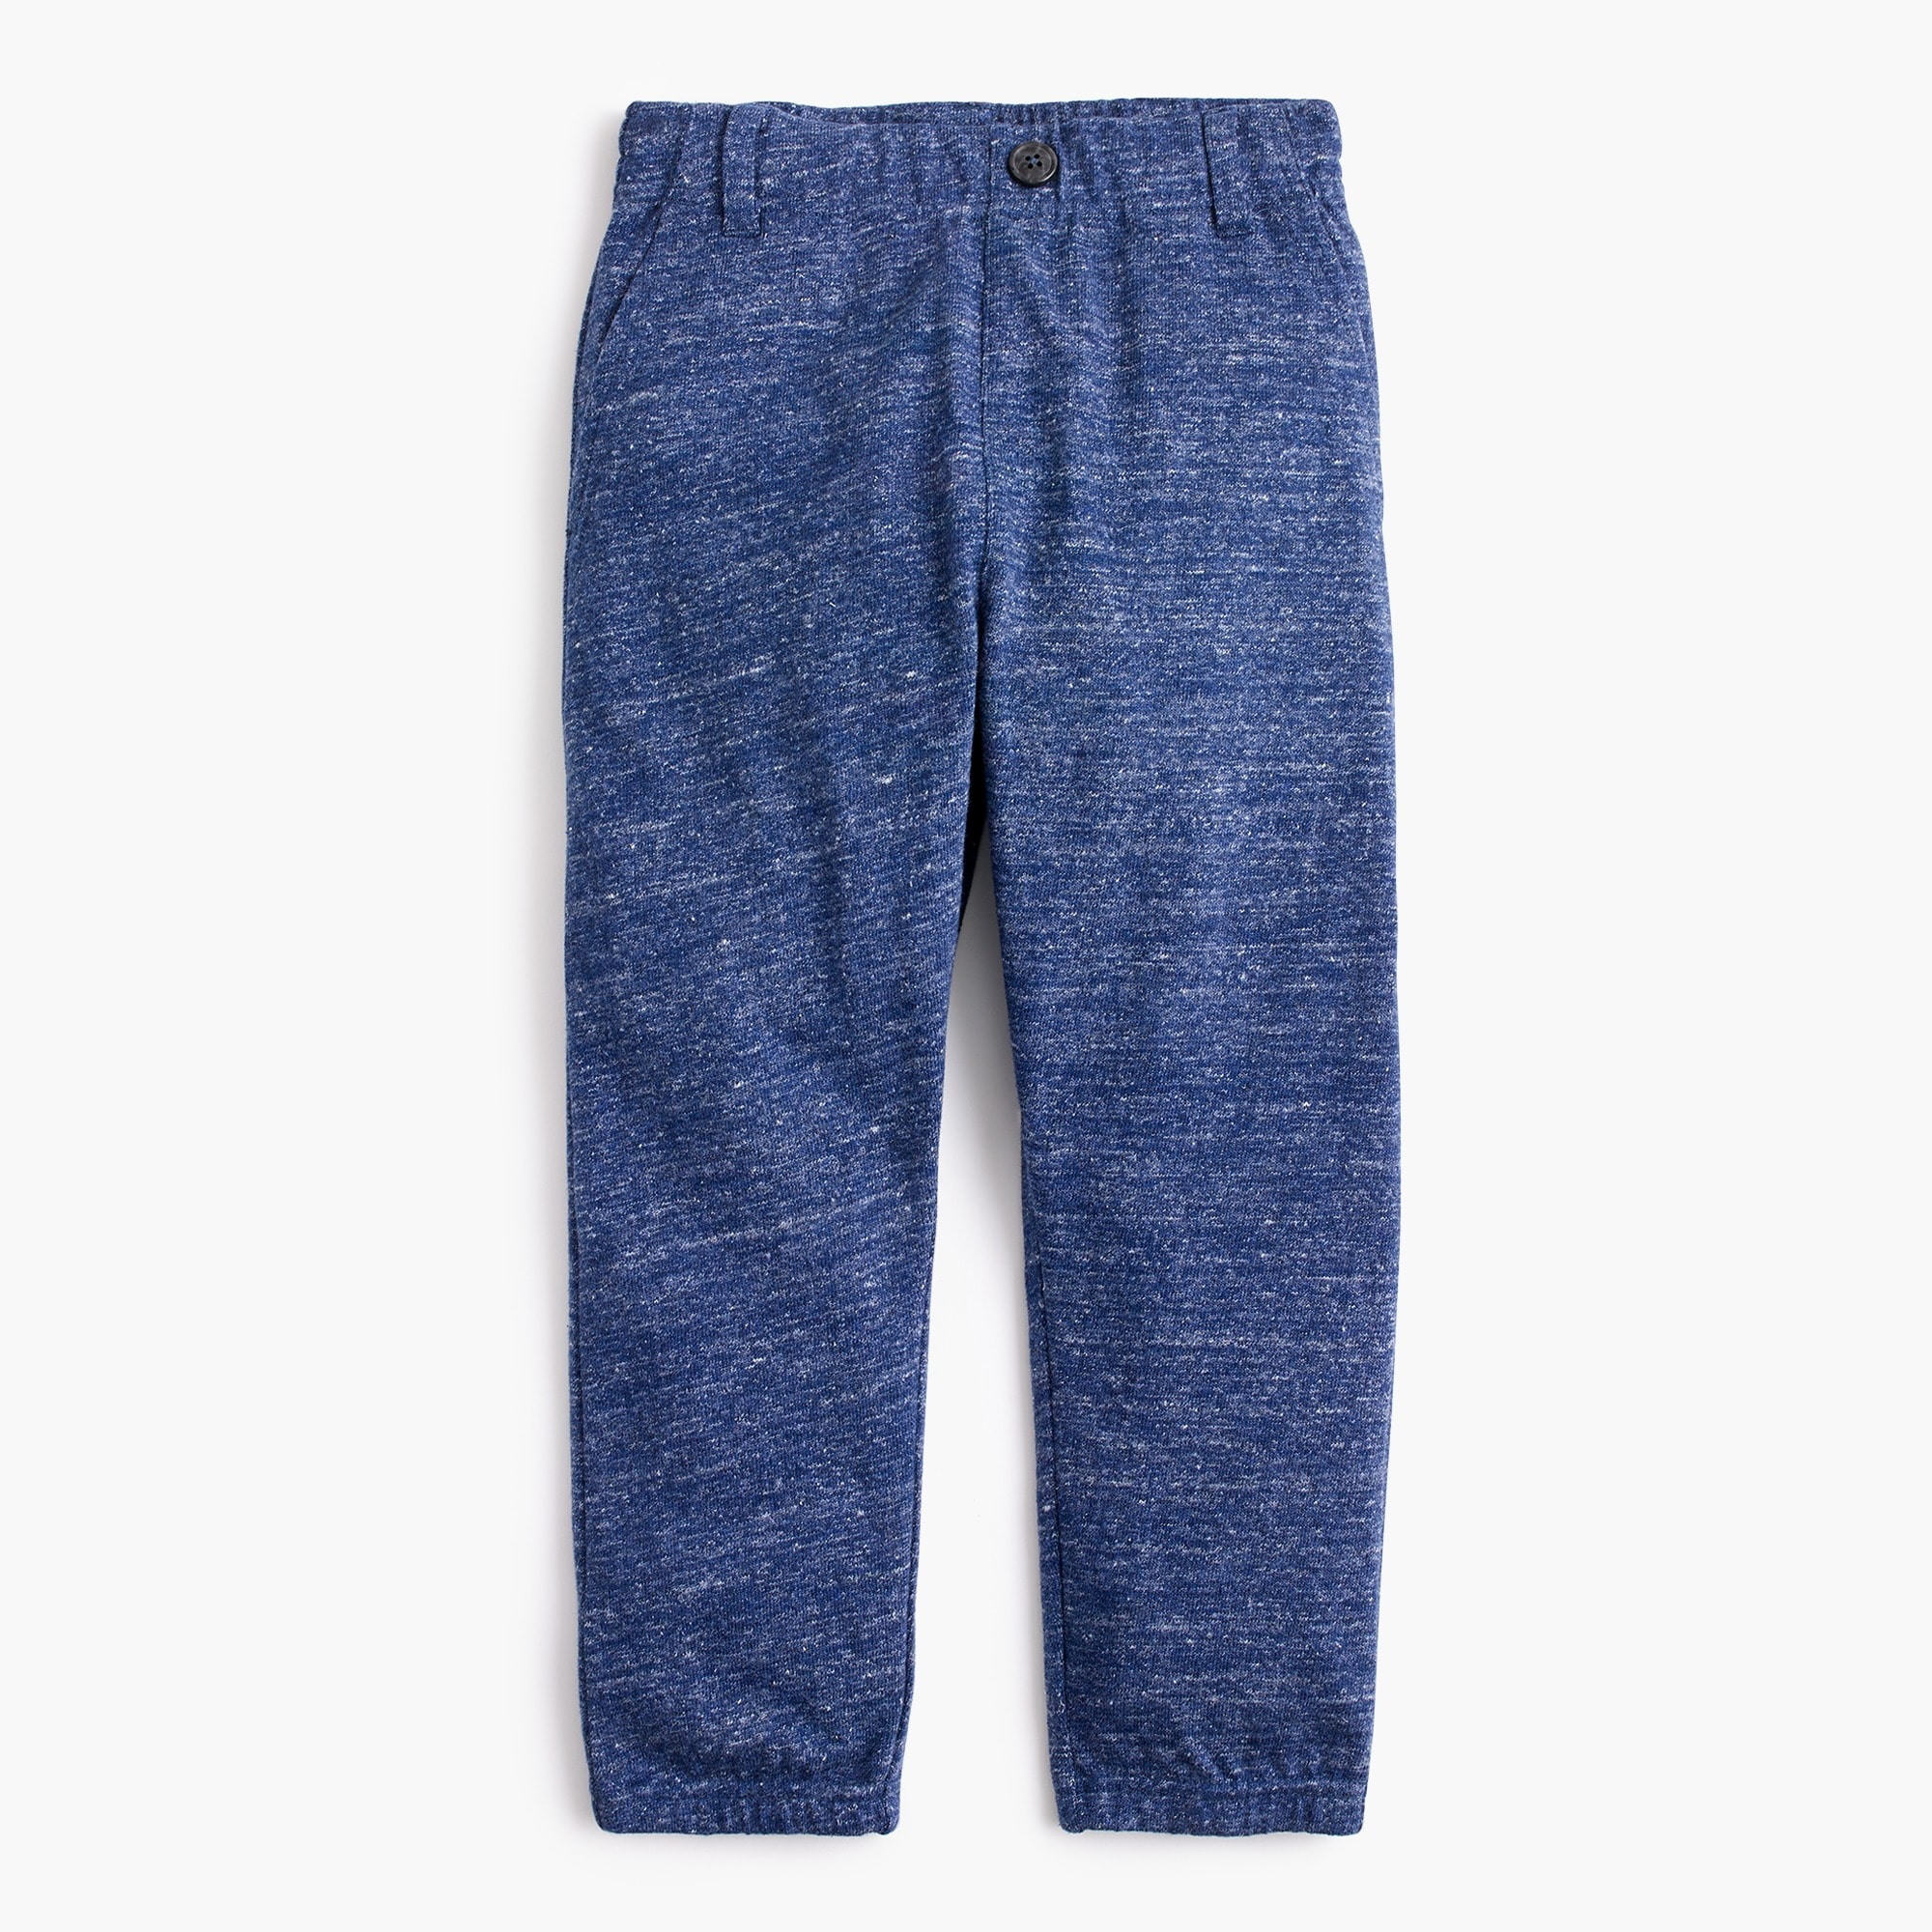 Image 1 for Boys' trouser sweatpant